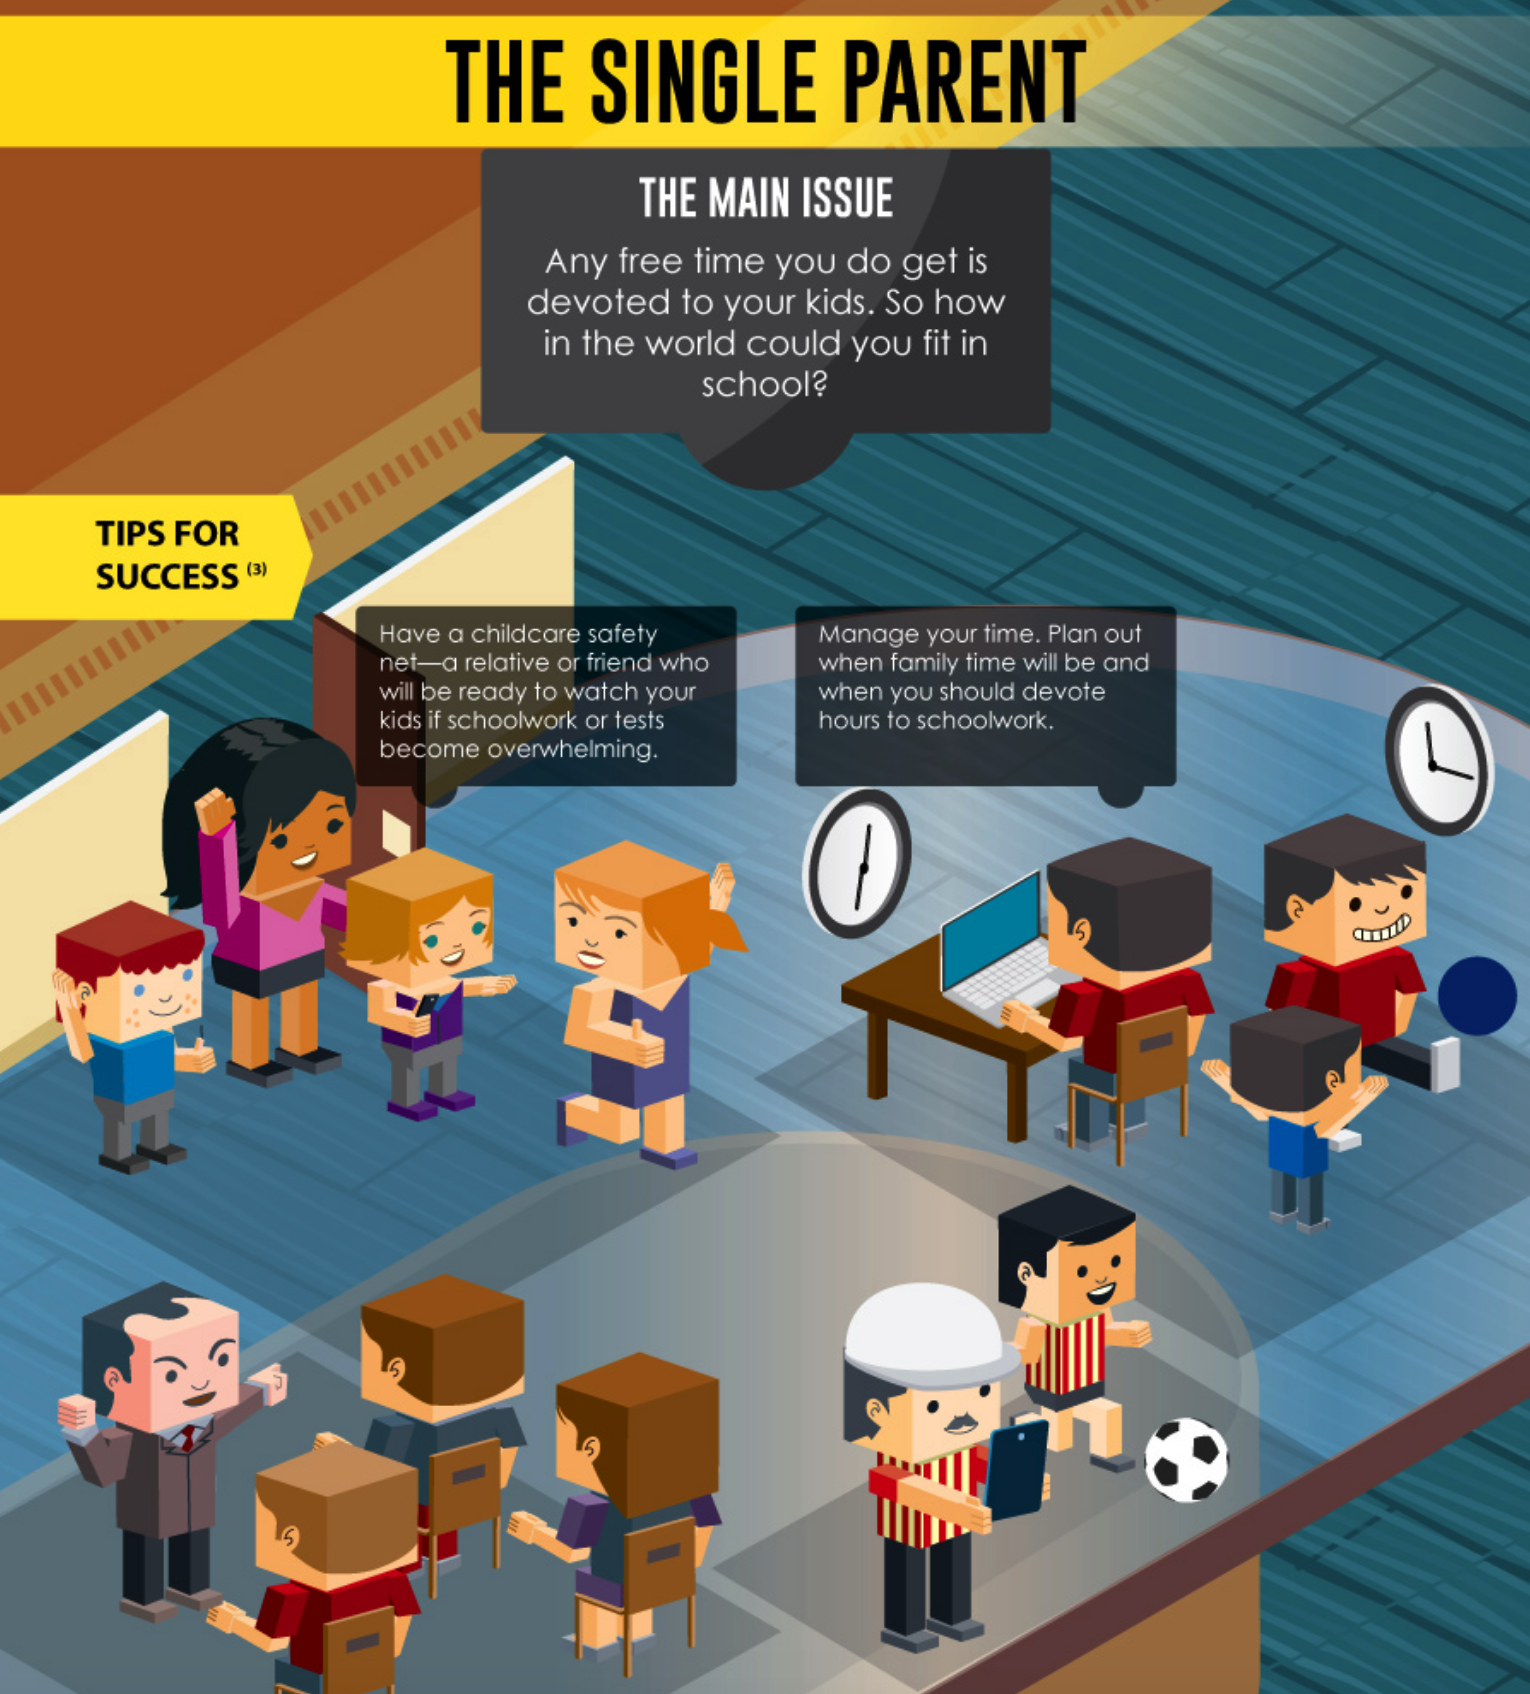 See the full infographic here: http://www.affordable-online-colleges.net/online-education/